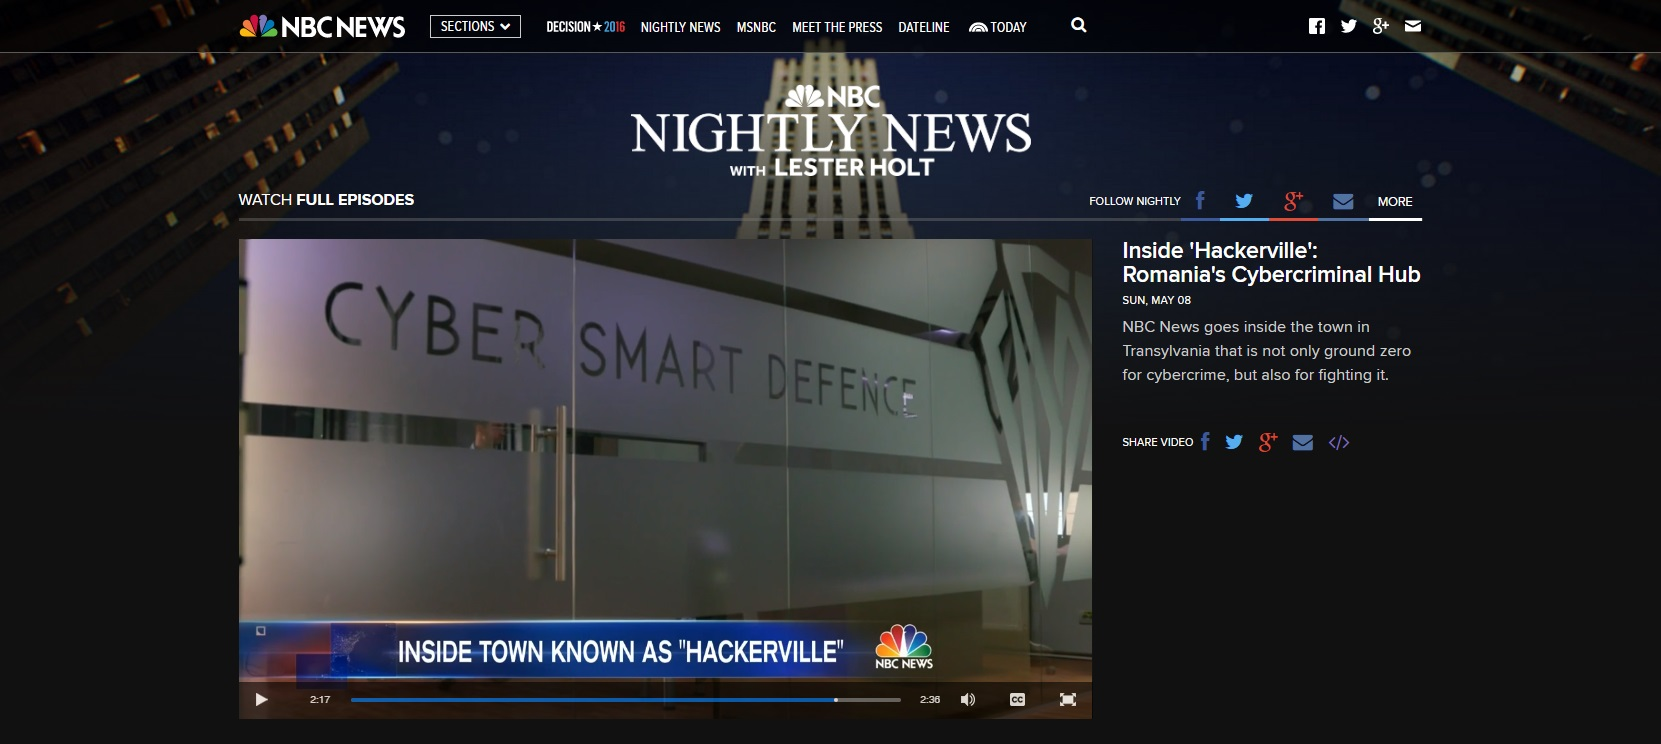 csd-on-nbc-news